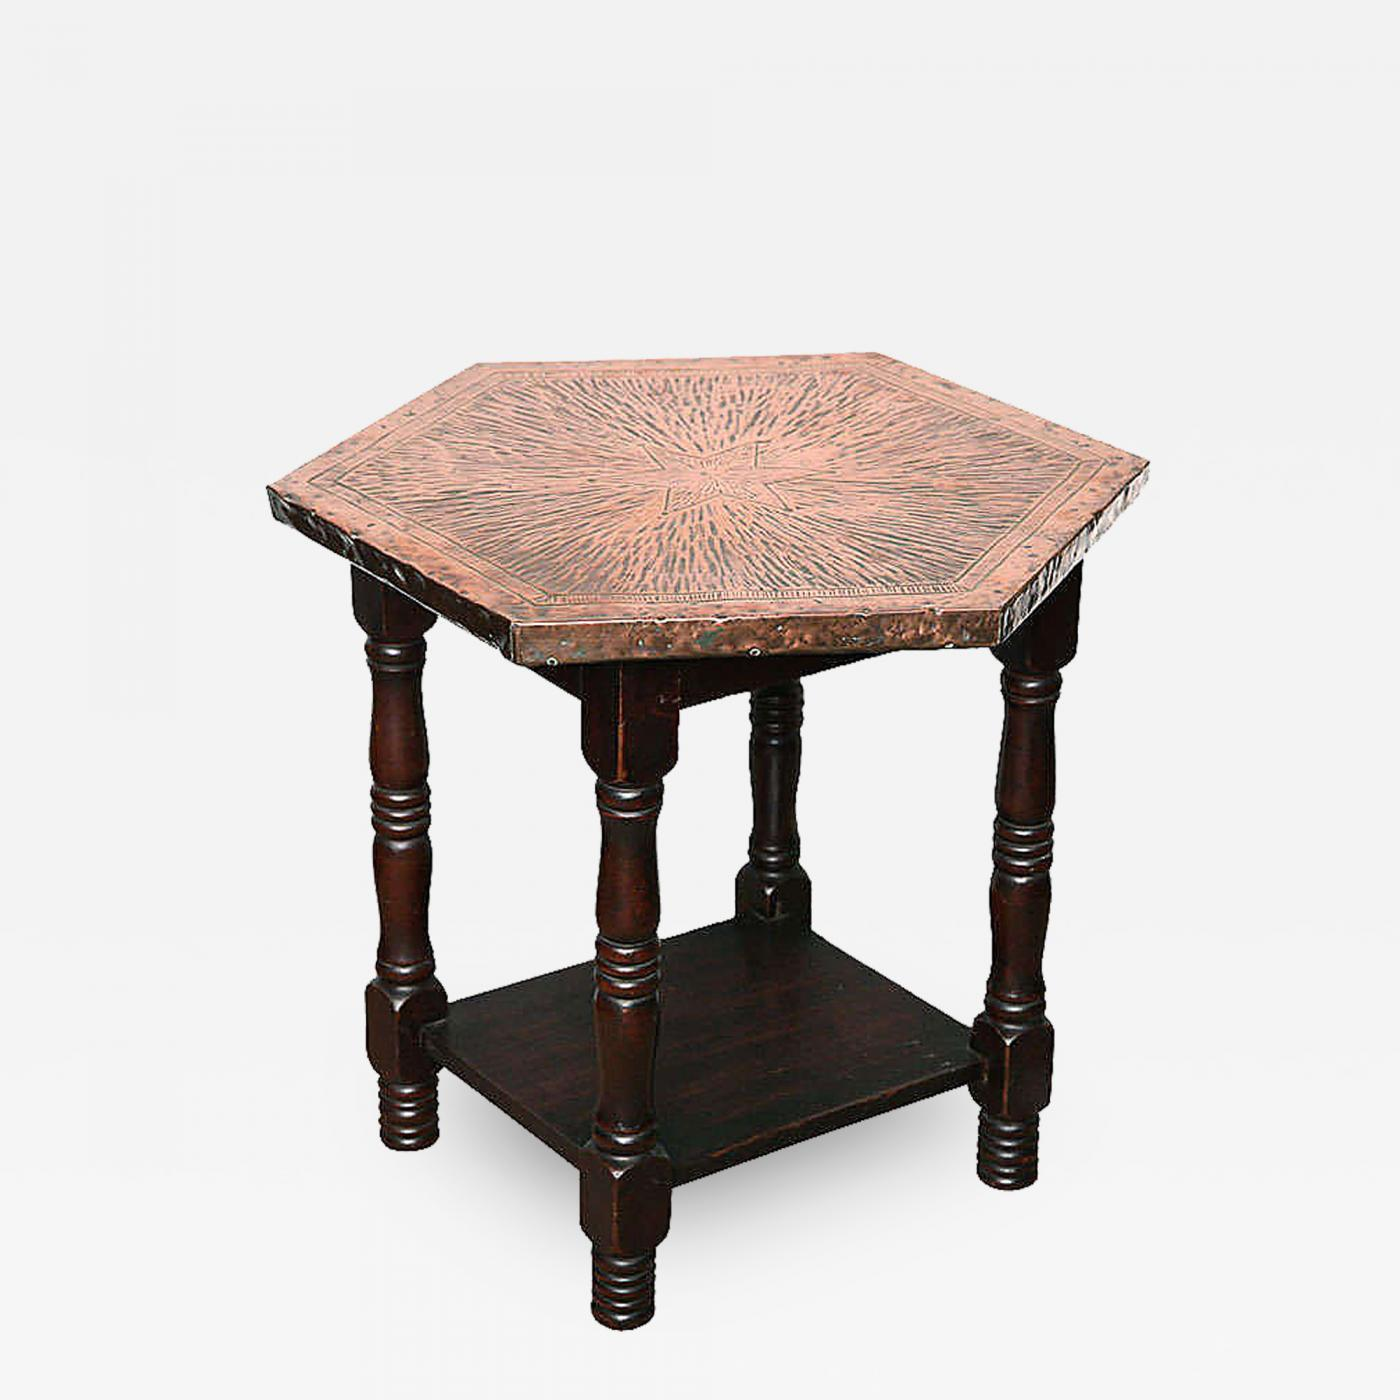 English Arts and Crafts Hammered Copper Table